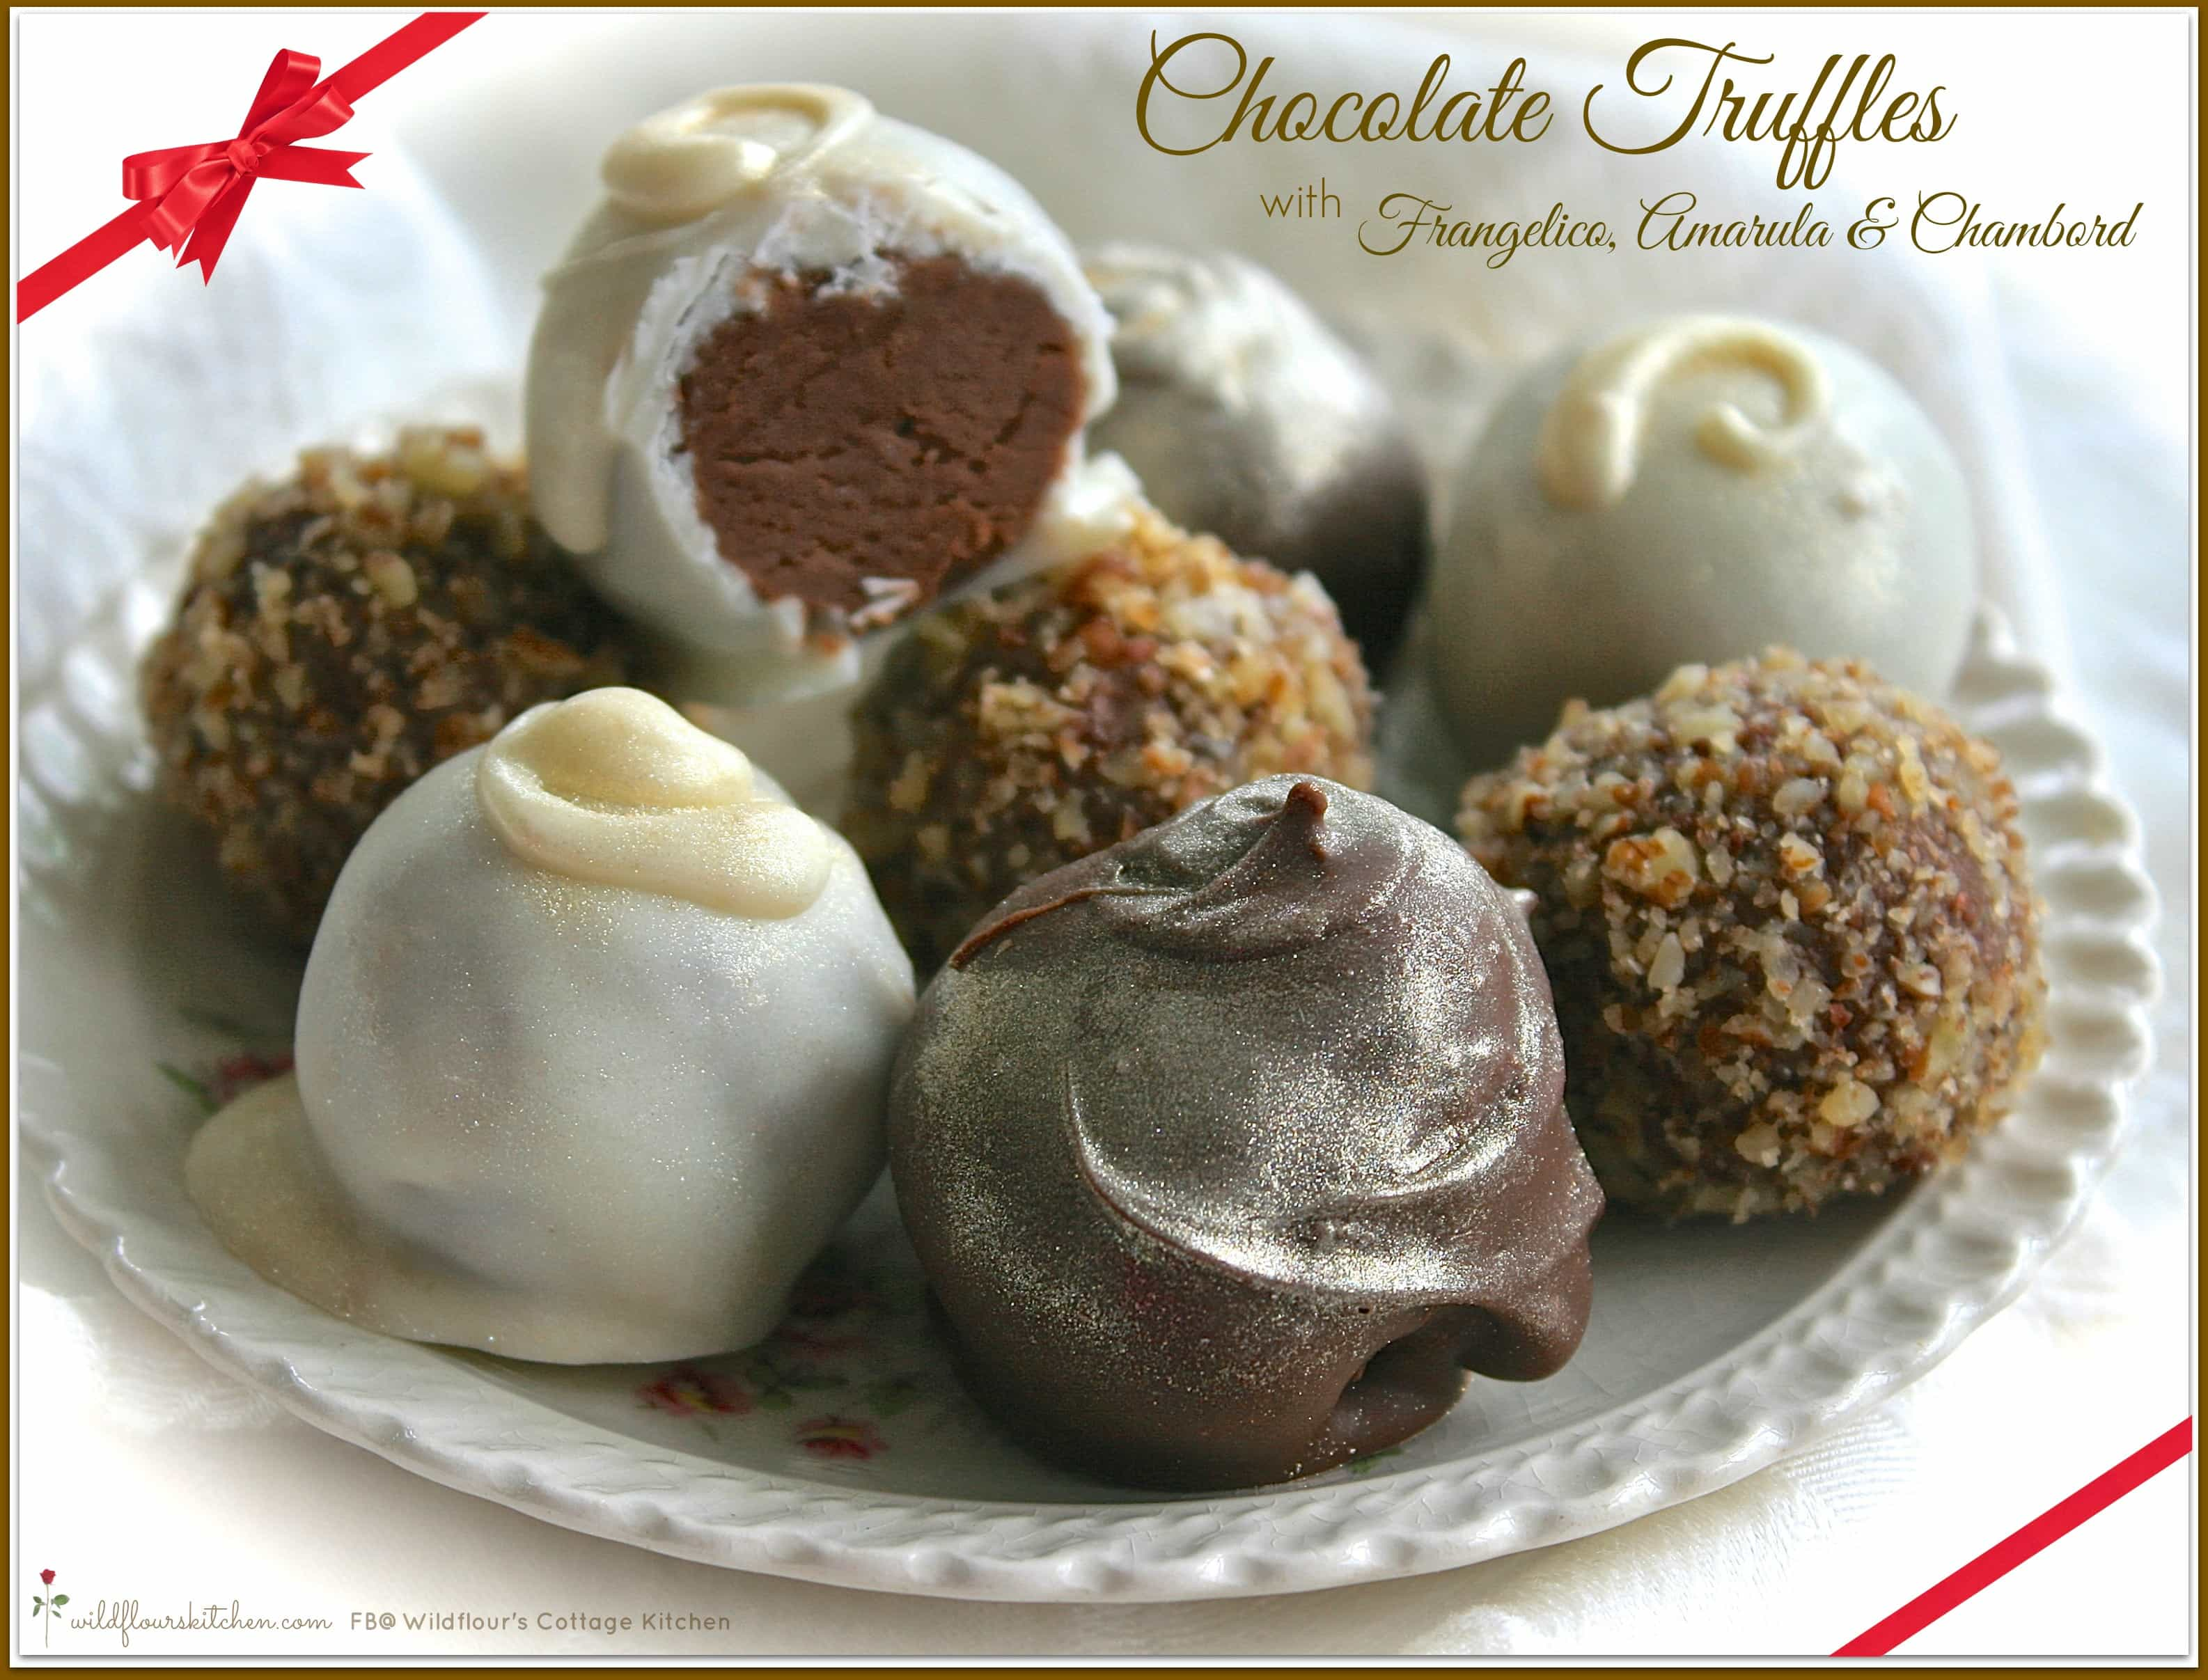 ... frangelico truffle cocktail chocolate truffles chocolate truffles